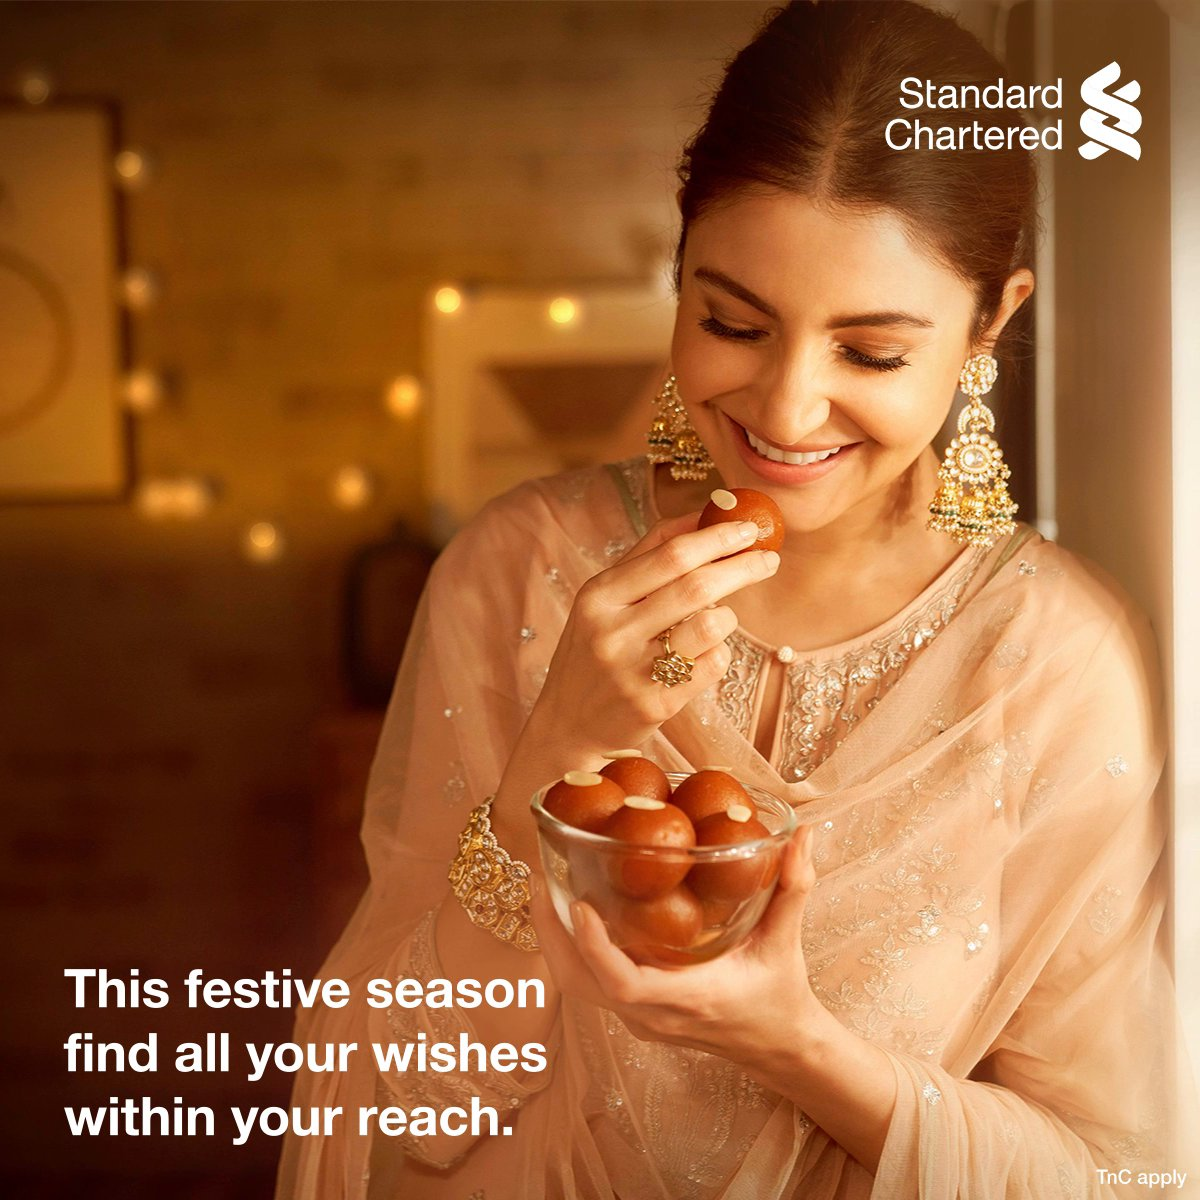 Enjoy every moment of this festive season! Get instant discounts and offers on Standard Chartered credit or debit cards. Celebrate the #FestivalOfYou.  To know more,  #FestiveSeason #StandardChartered